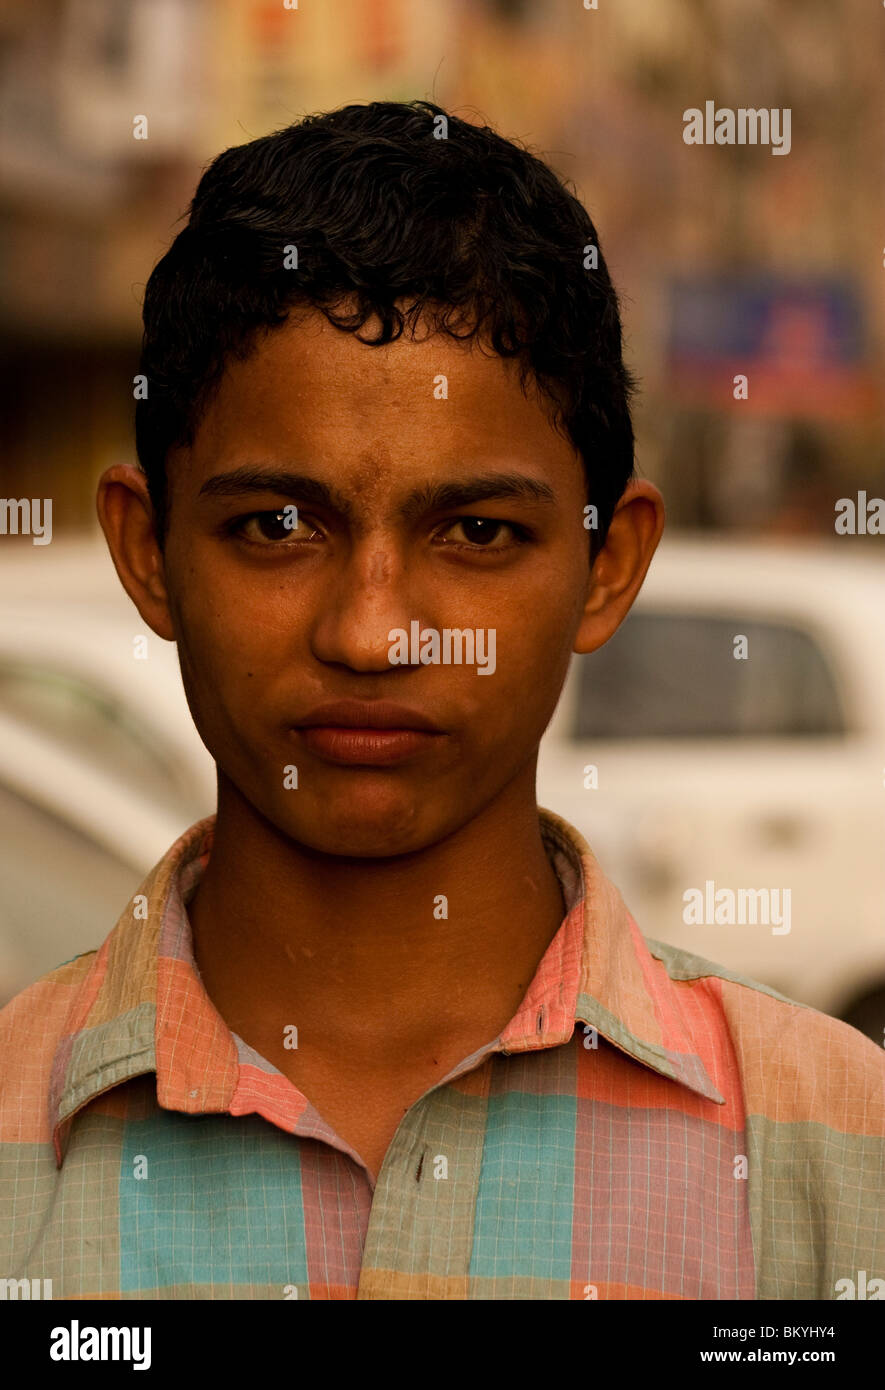 angry young man in Delhi, India - Stock Image